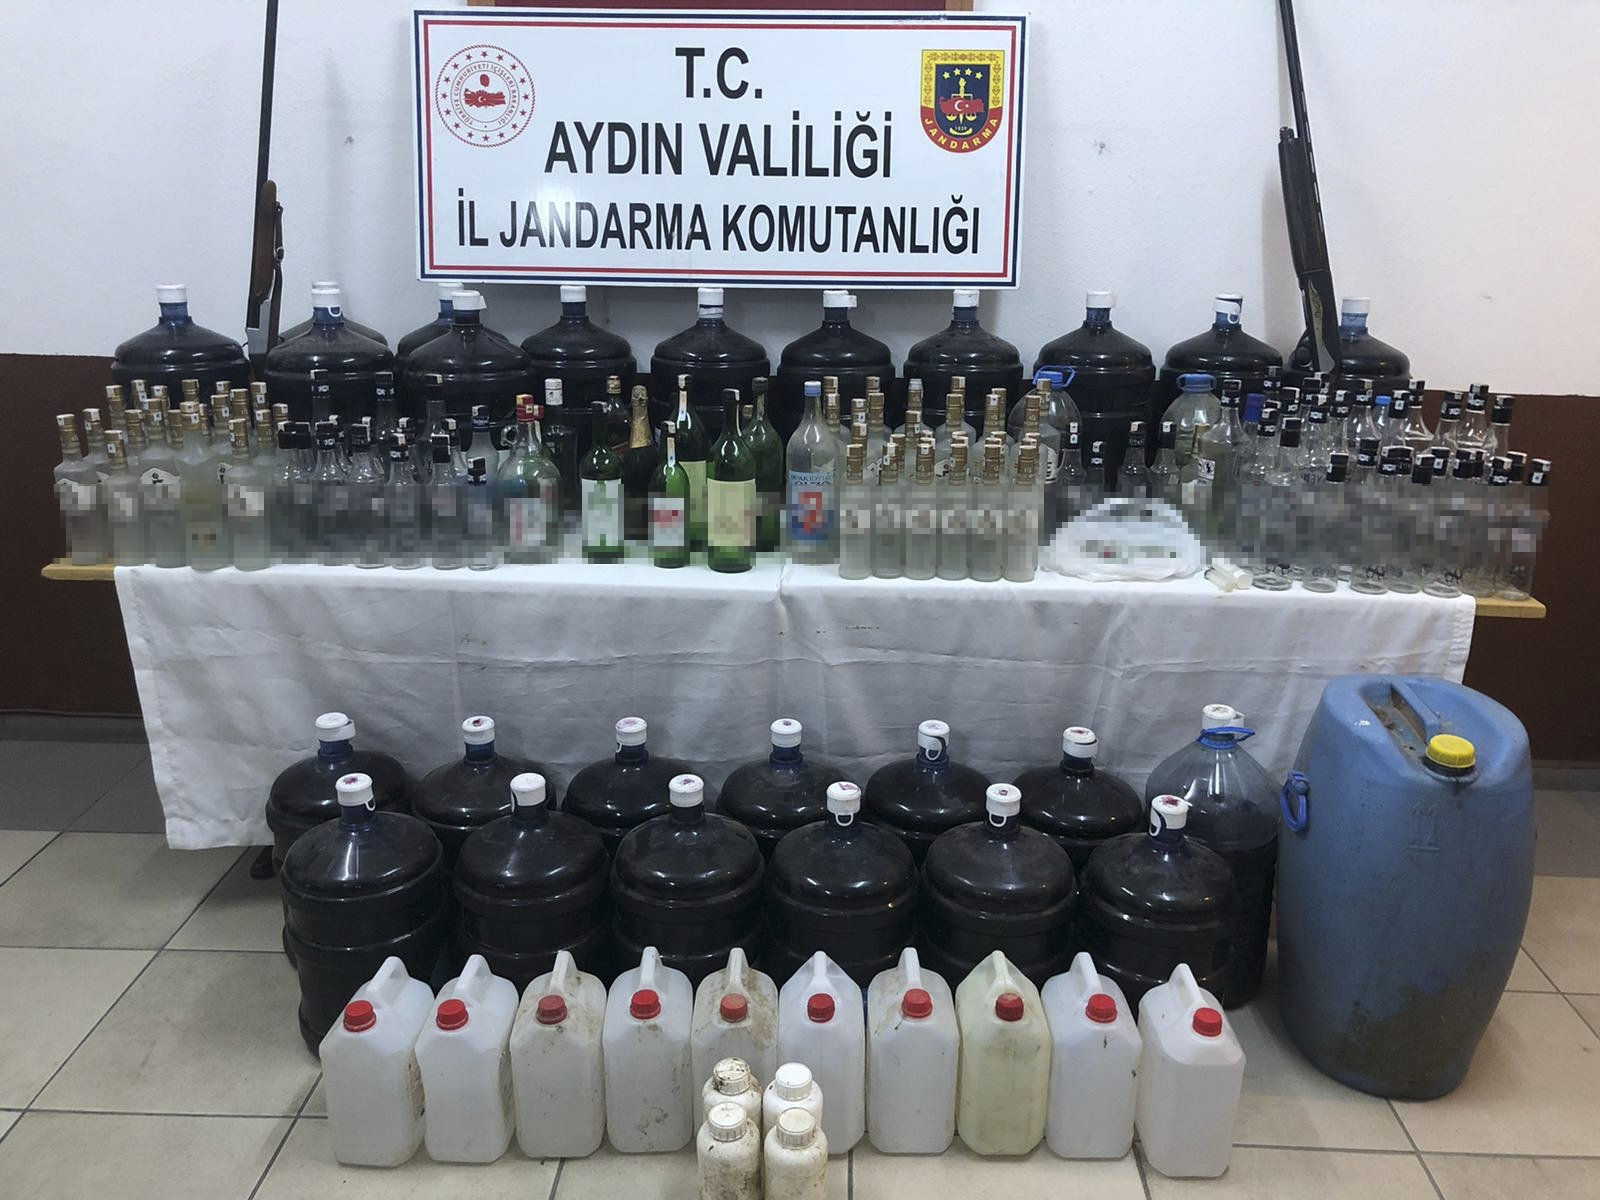 Bootleg alcohol seized in an operation on display in Aydın, western Turkey, Oct. 21, 2020. (AA Photo)